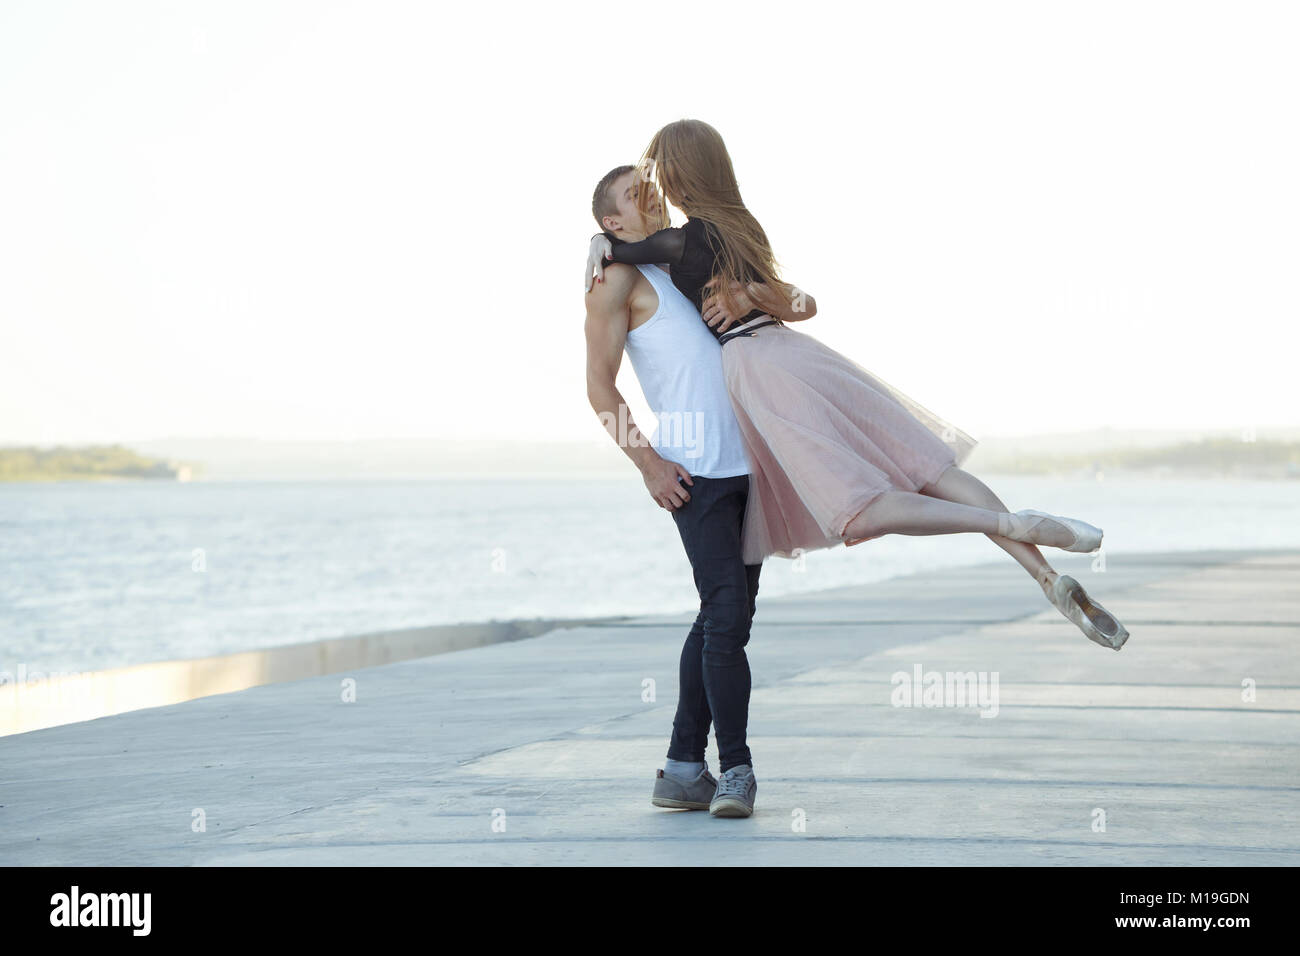 Slender ballerina dances with a modern dancer. Dating lovers. Passion and romance of dance. Performance in the streets - Stock Image